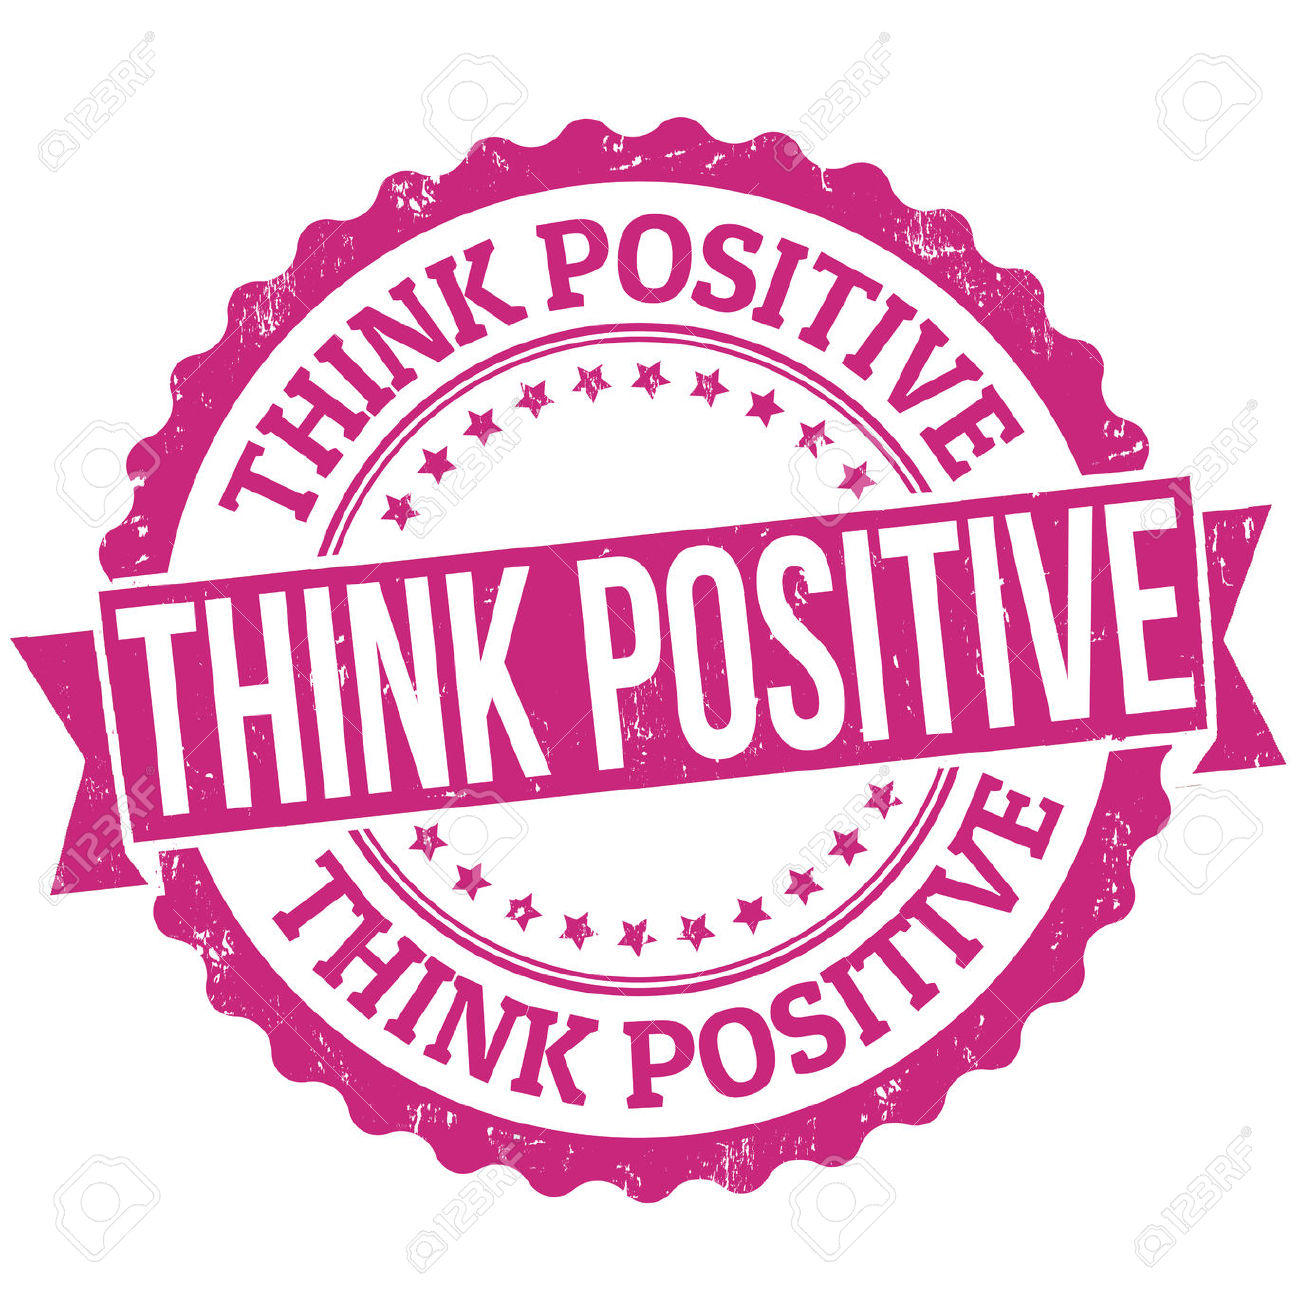 think positive: Think positive.